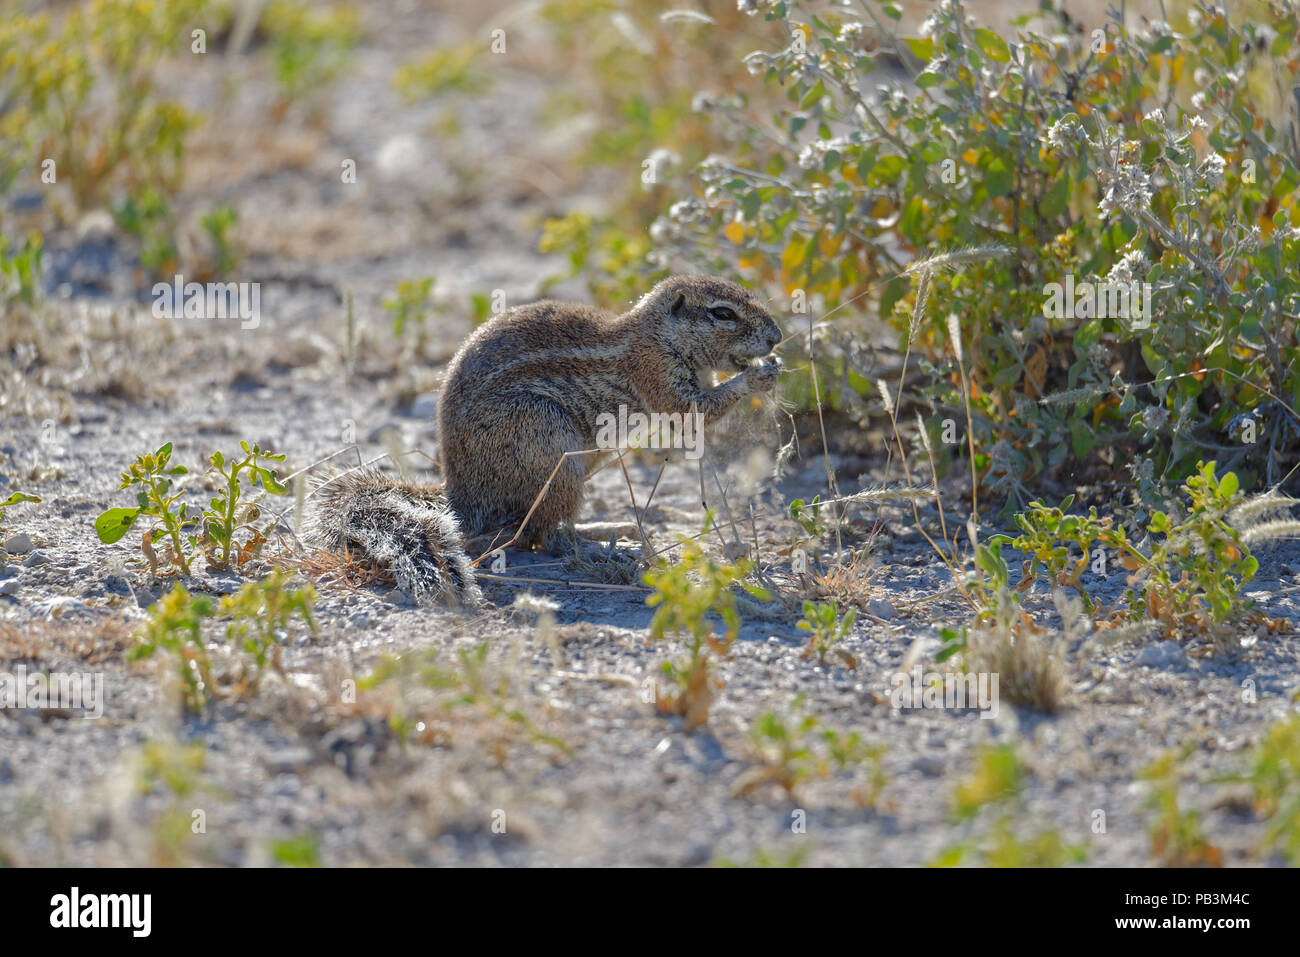 A ground squirrel releases a puff of pollen or seeds from the grass s/he is eating - Stock Image